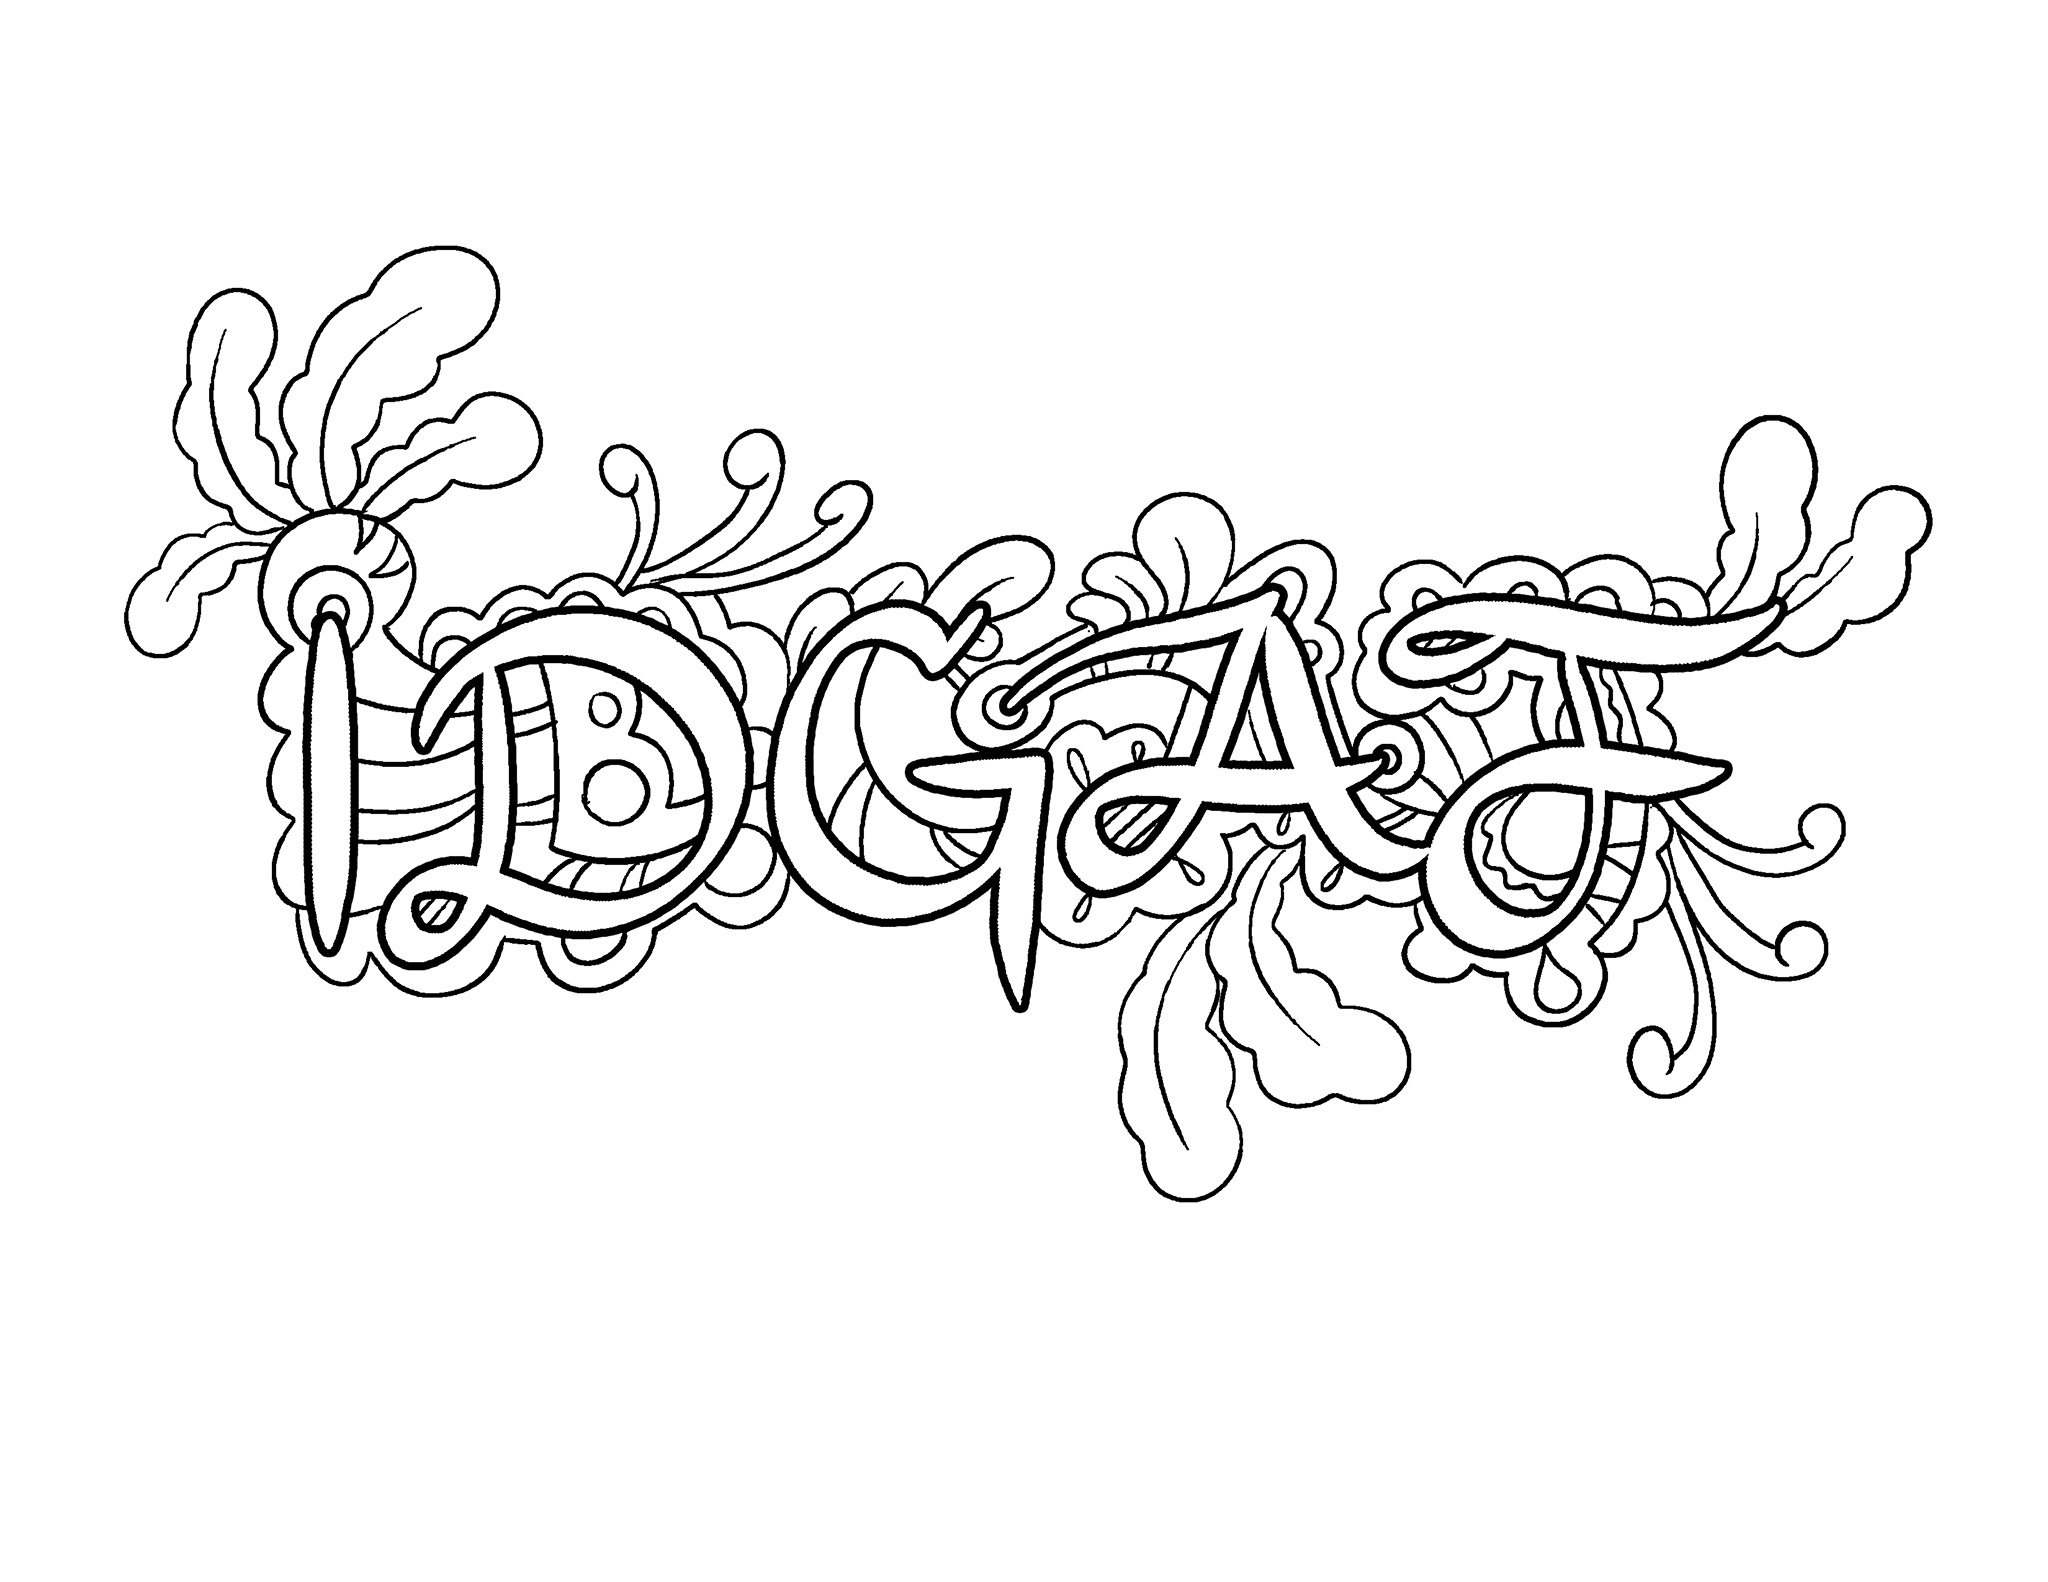 Coloring Pages Ideas: 31 Stunning Adult Swear Word Coloring Pages - Free Printable Coloring Pages For Adults Swear Words